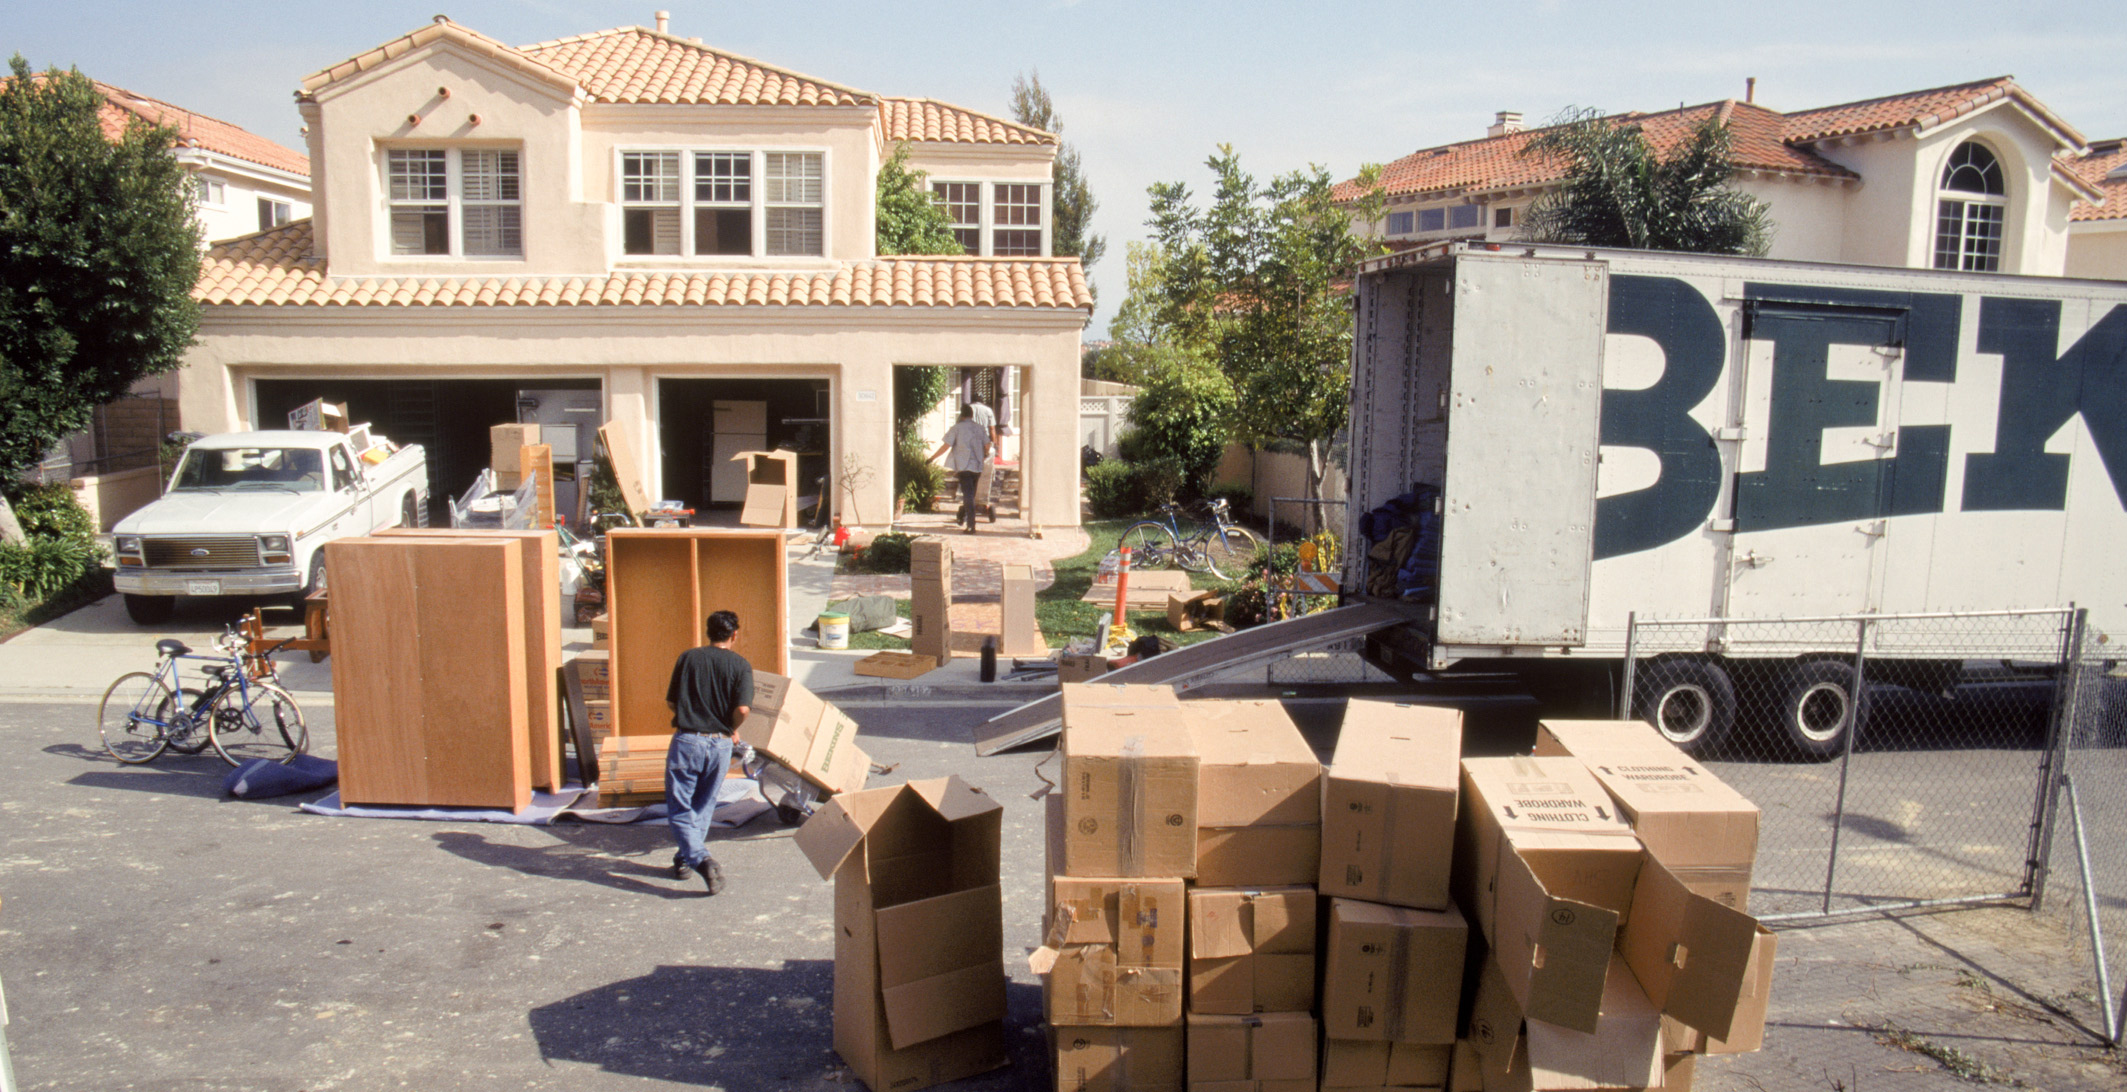 The Complete Guide For Moving to a New Home